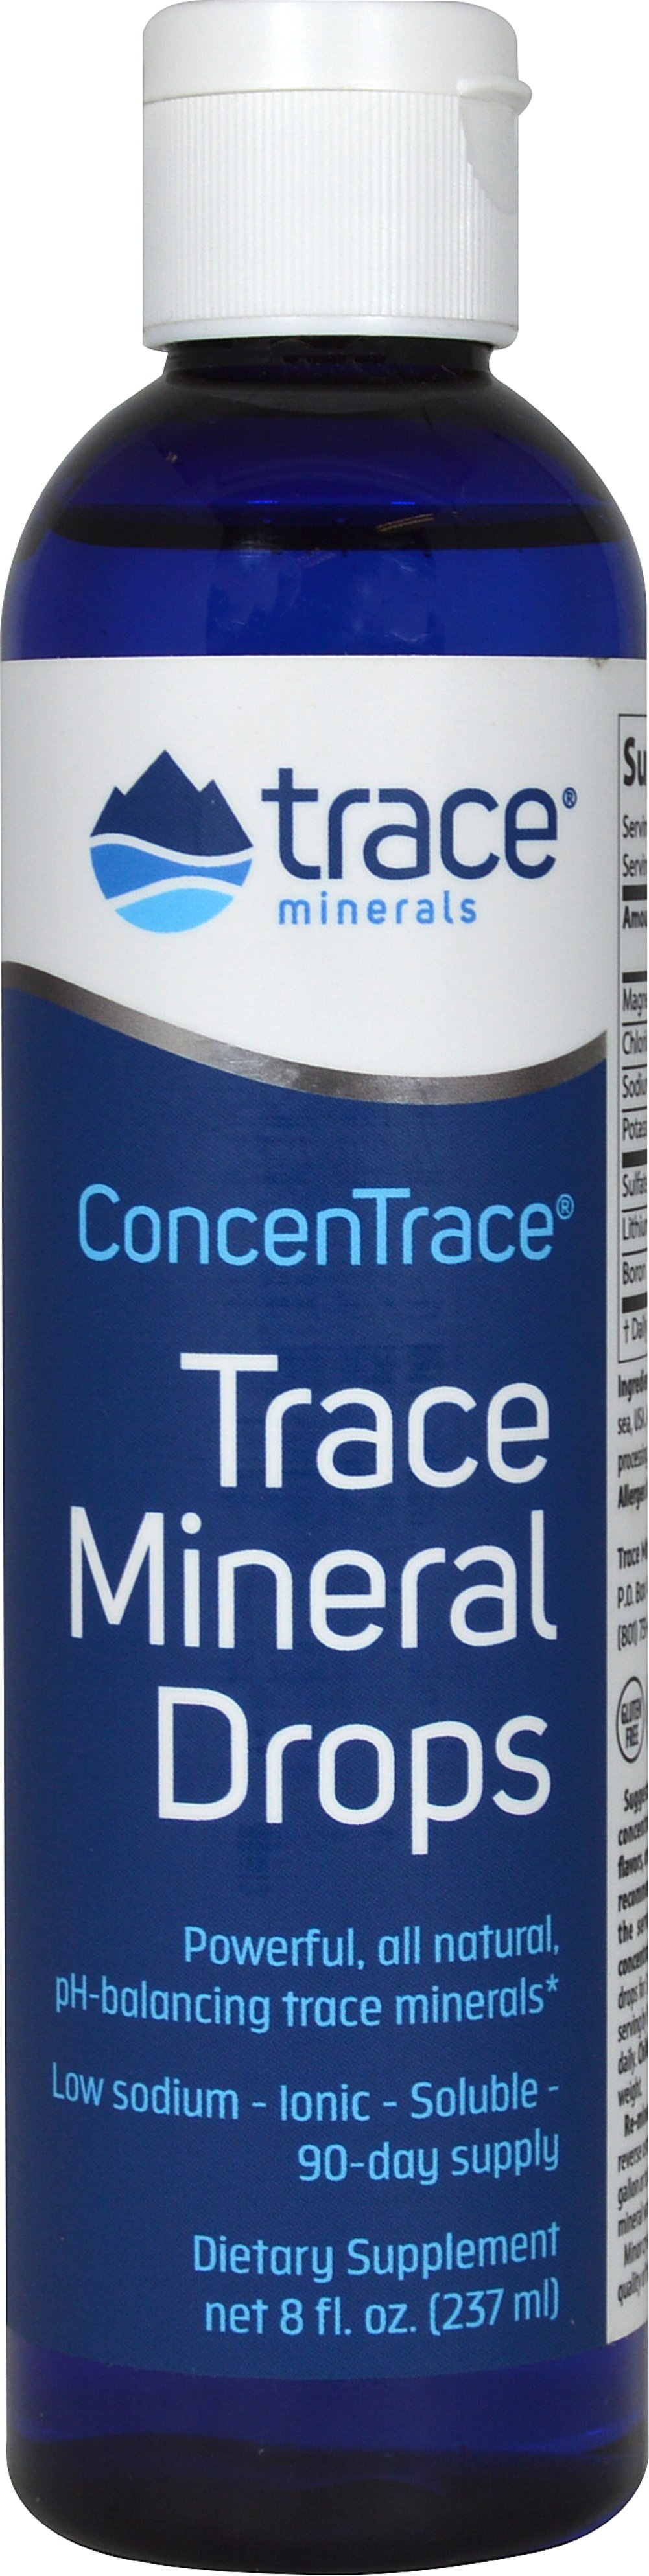 Concentrace Trace Minerals <p><strong>From the Manufacturer's Label:</strong></p><p>ConcenTrace® Trace Mineral Drops is a natural mineral concentrate that is so concentrated that 40 drops (½ teaspoon) equals the mineral content of ½ cup sea water with 99% sodium removed.  You may expect a wide spectrum of nutritional benefits. For regular or sodium restricted diets.</p><p>Manufactured by Trace Minerals.</p> 8 oz Liquid  $16.29